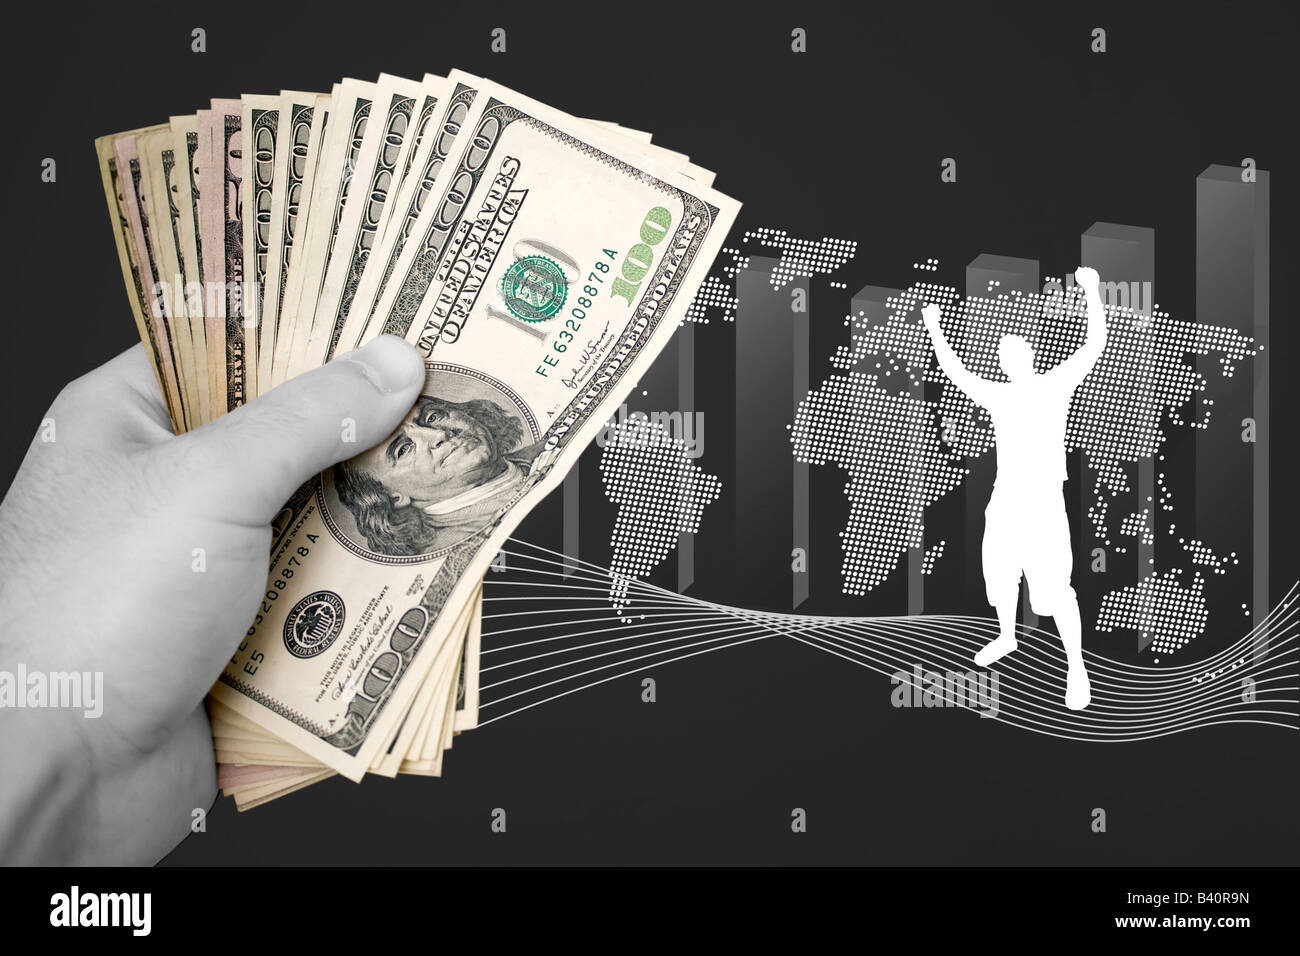 A handful of cash isolated over a business finance themed background - Stock Image